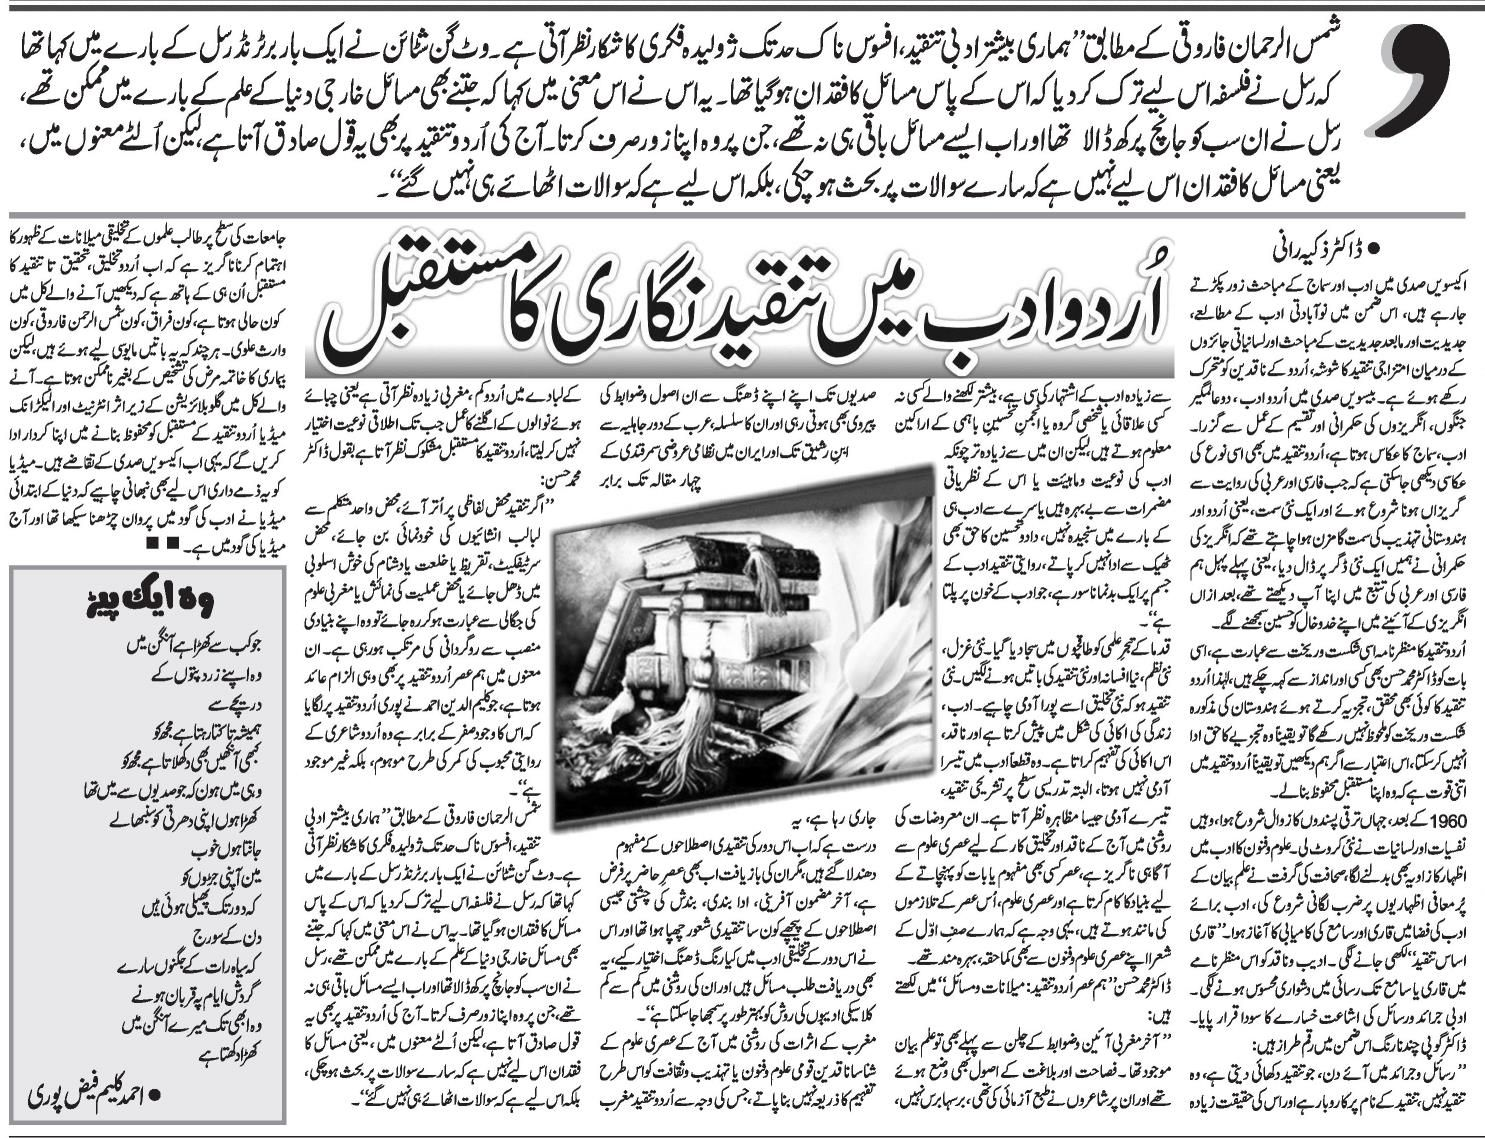 The Urdu Times Daily India's Leading Daily Urdu News